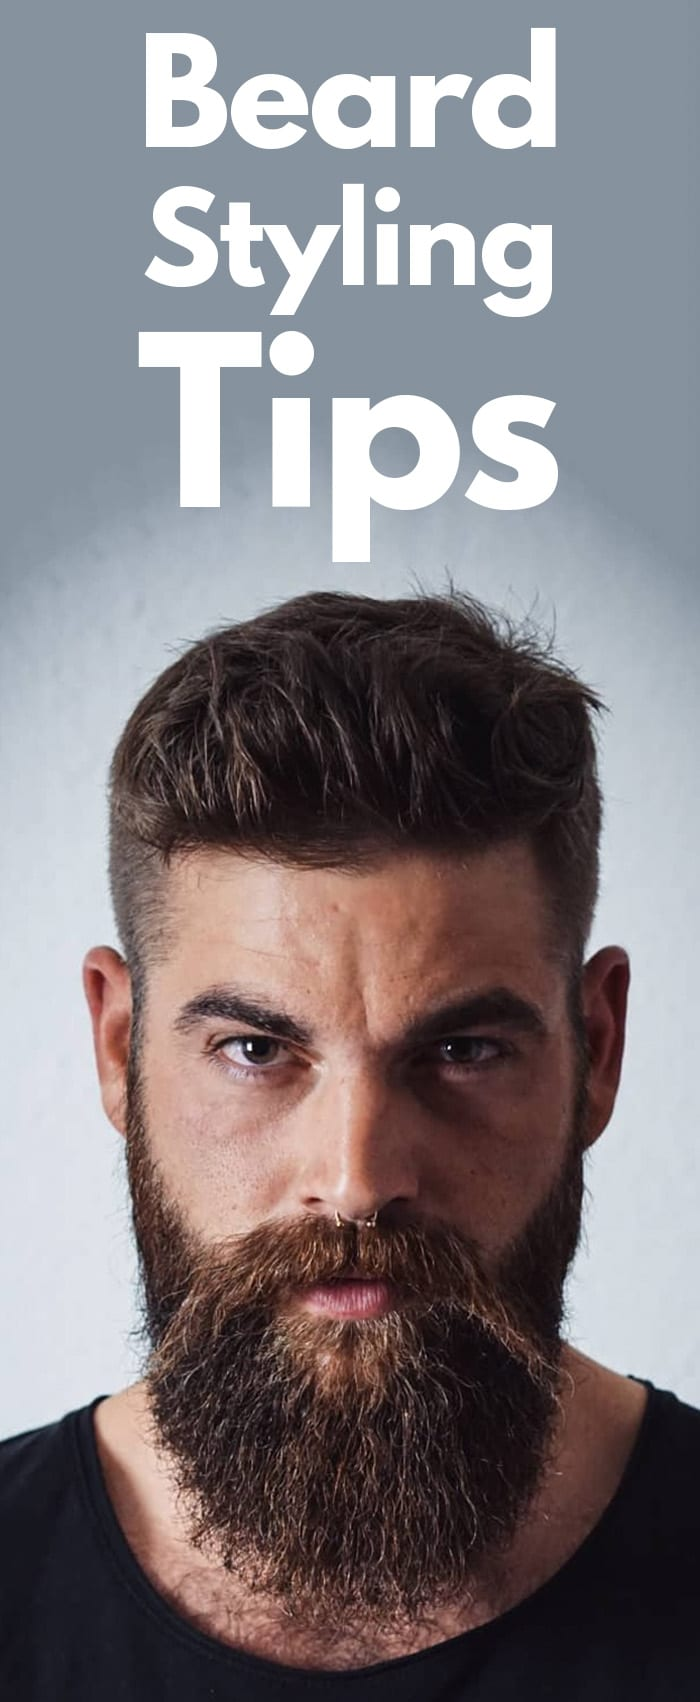 Beard Styling Tips.